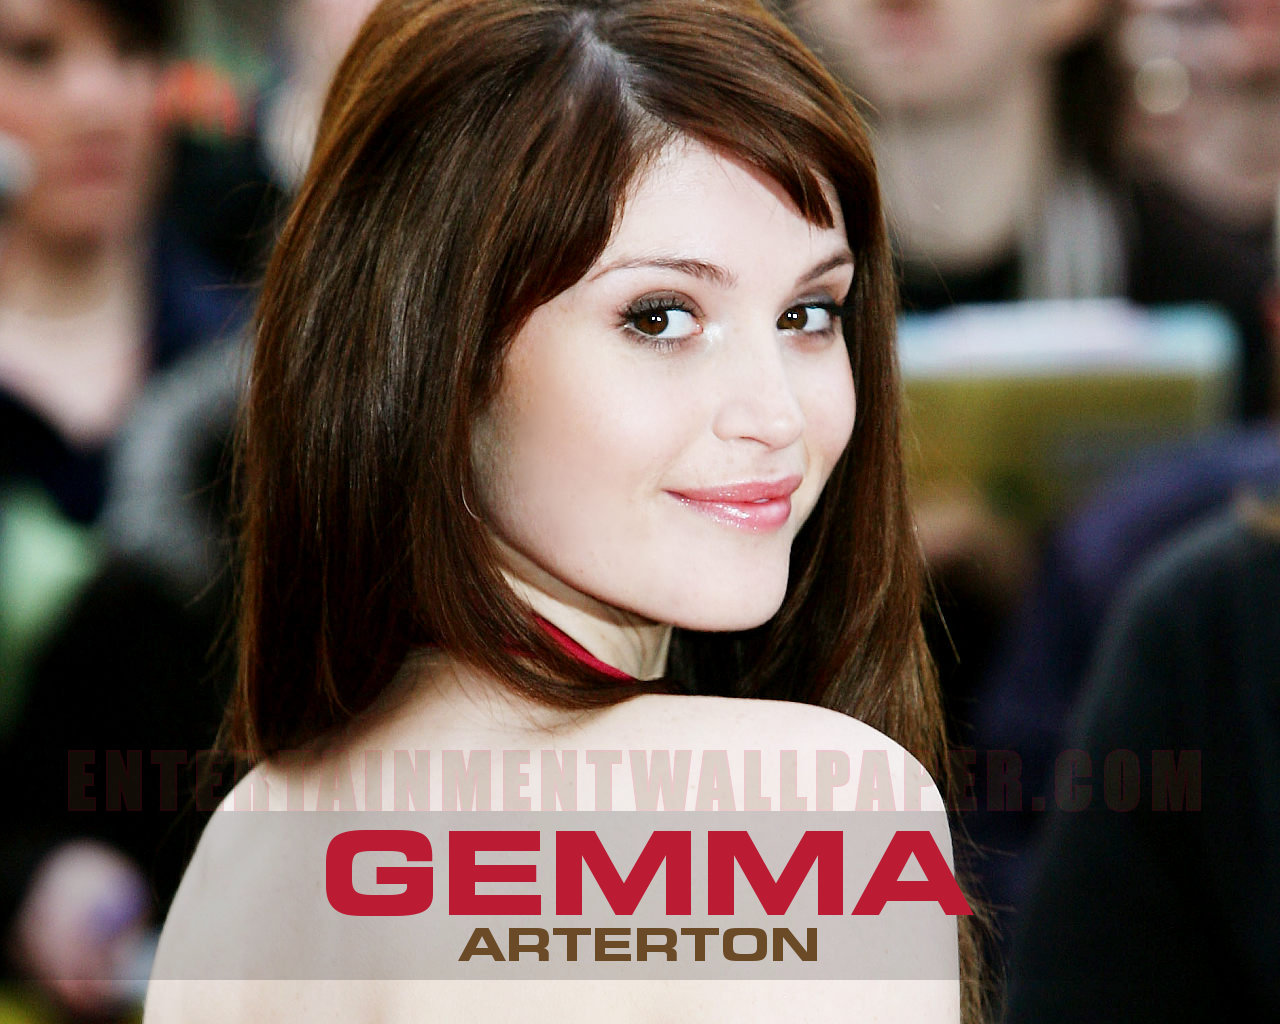 http://3.bp.blogspot.com/-DW2BauceUy0/T9dfjb2EI6I/AAAAAAAAAJ0/cIM6is-73SM/s1600/Gemma-Arterton-Wallpapers-HD.jpg